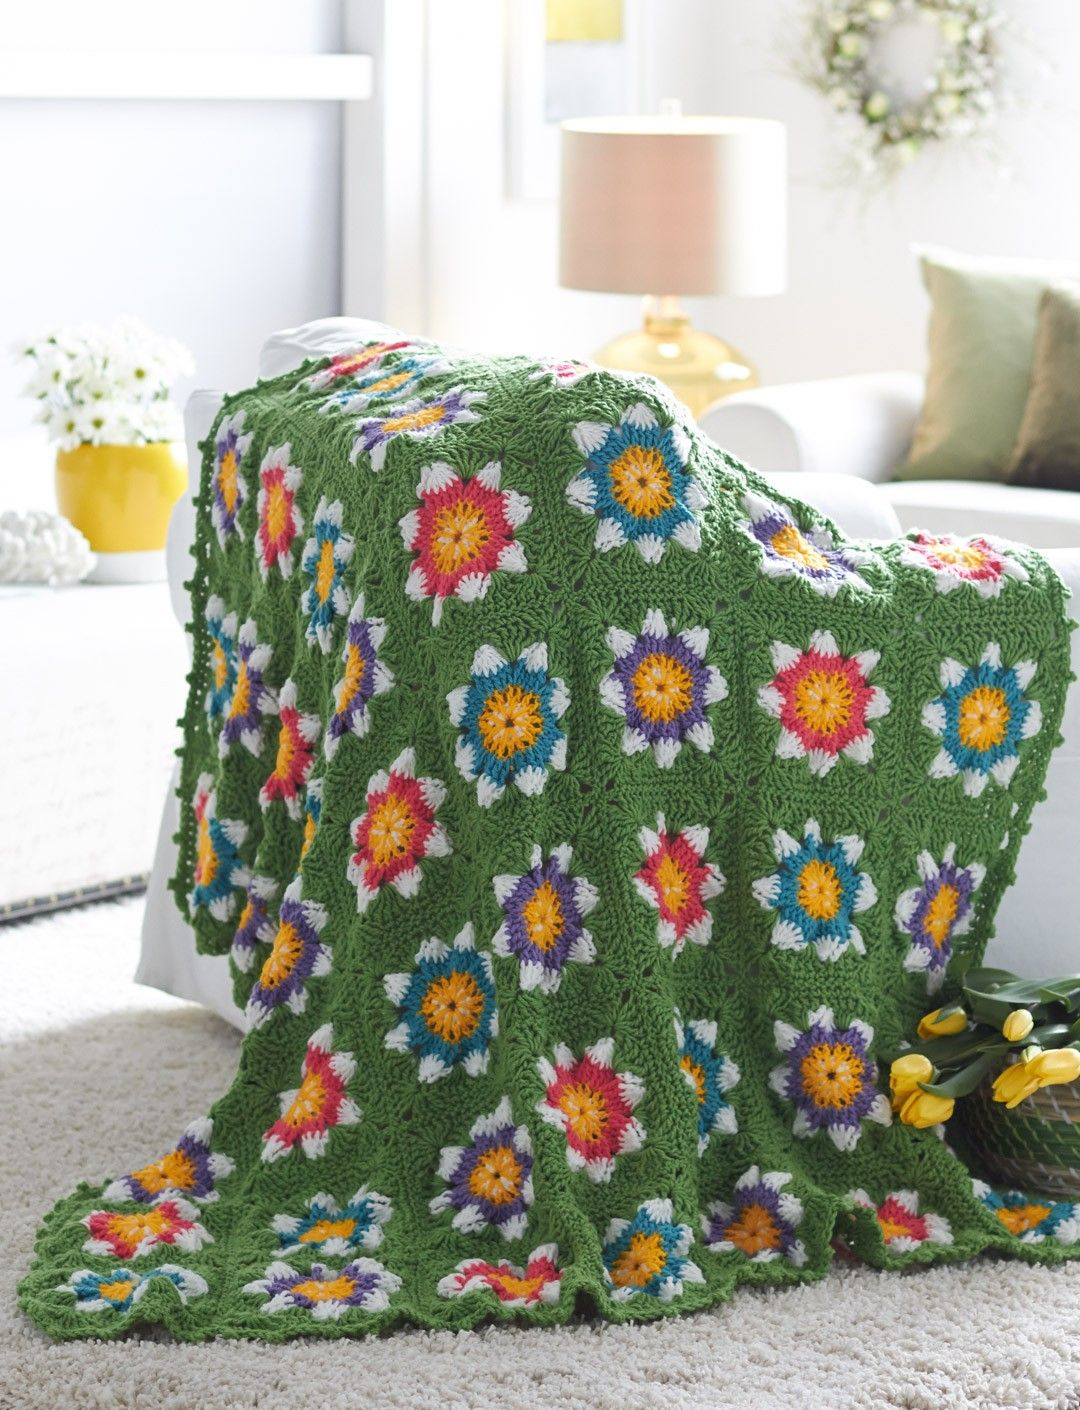 Yarnspirations.com - Bernat Field of Flowers Blanket - Patterns  | Yarnspirations - (Pattern Downloaded - SLT)